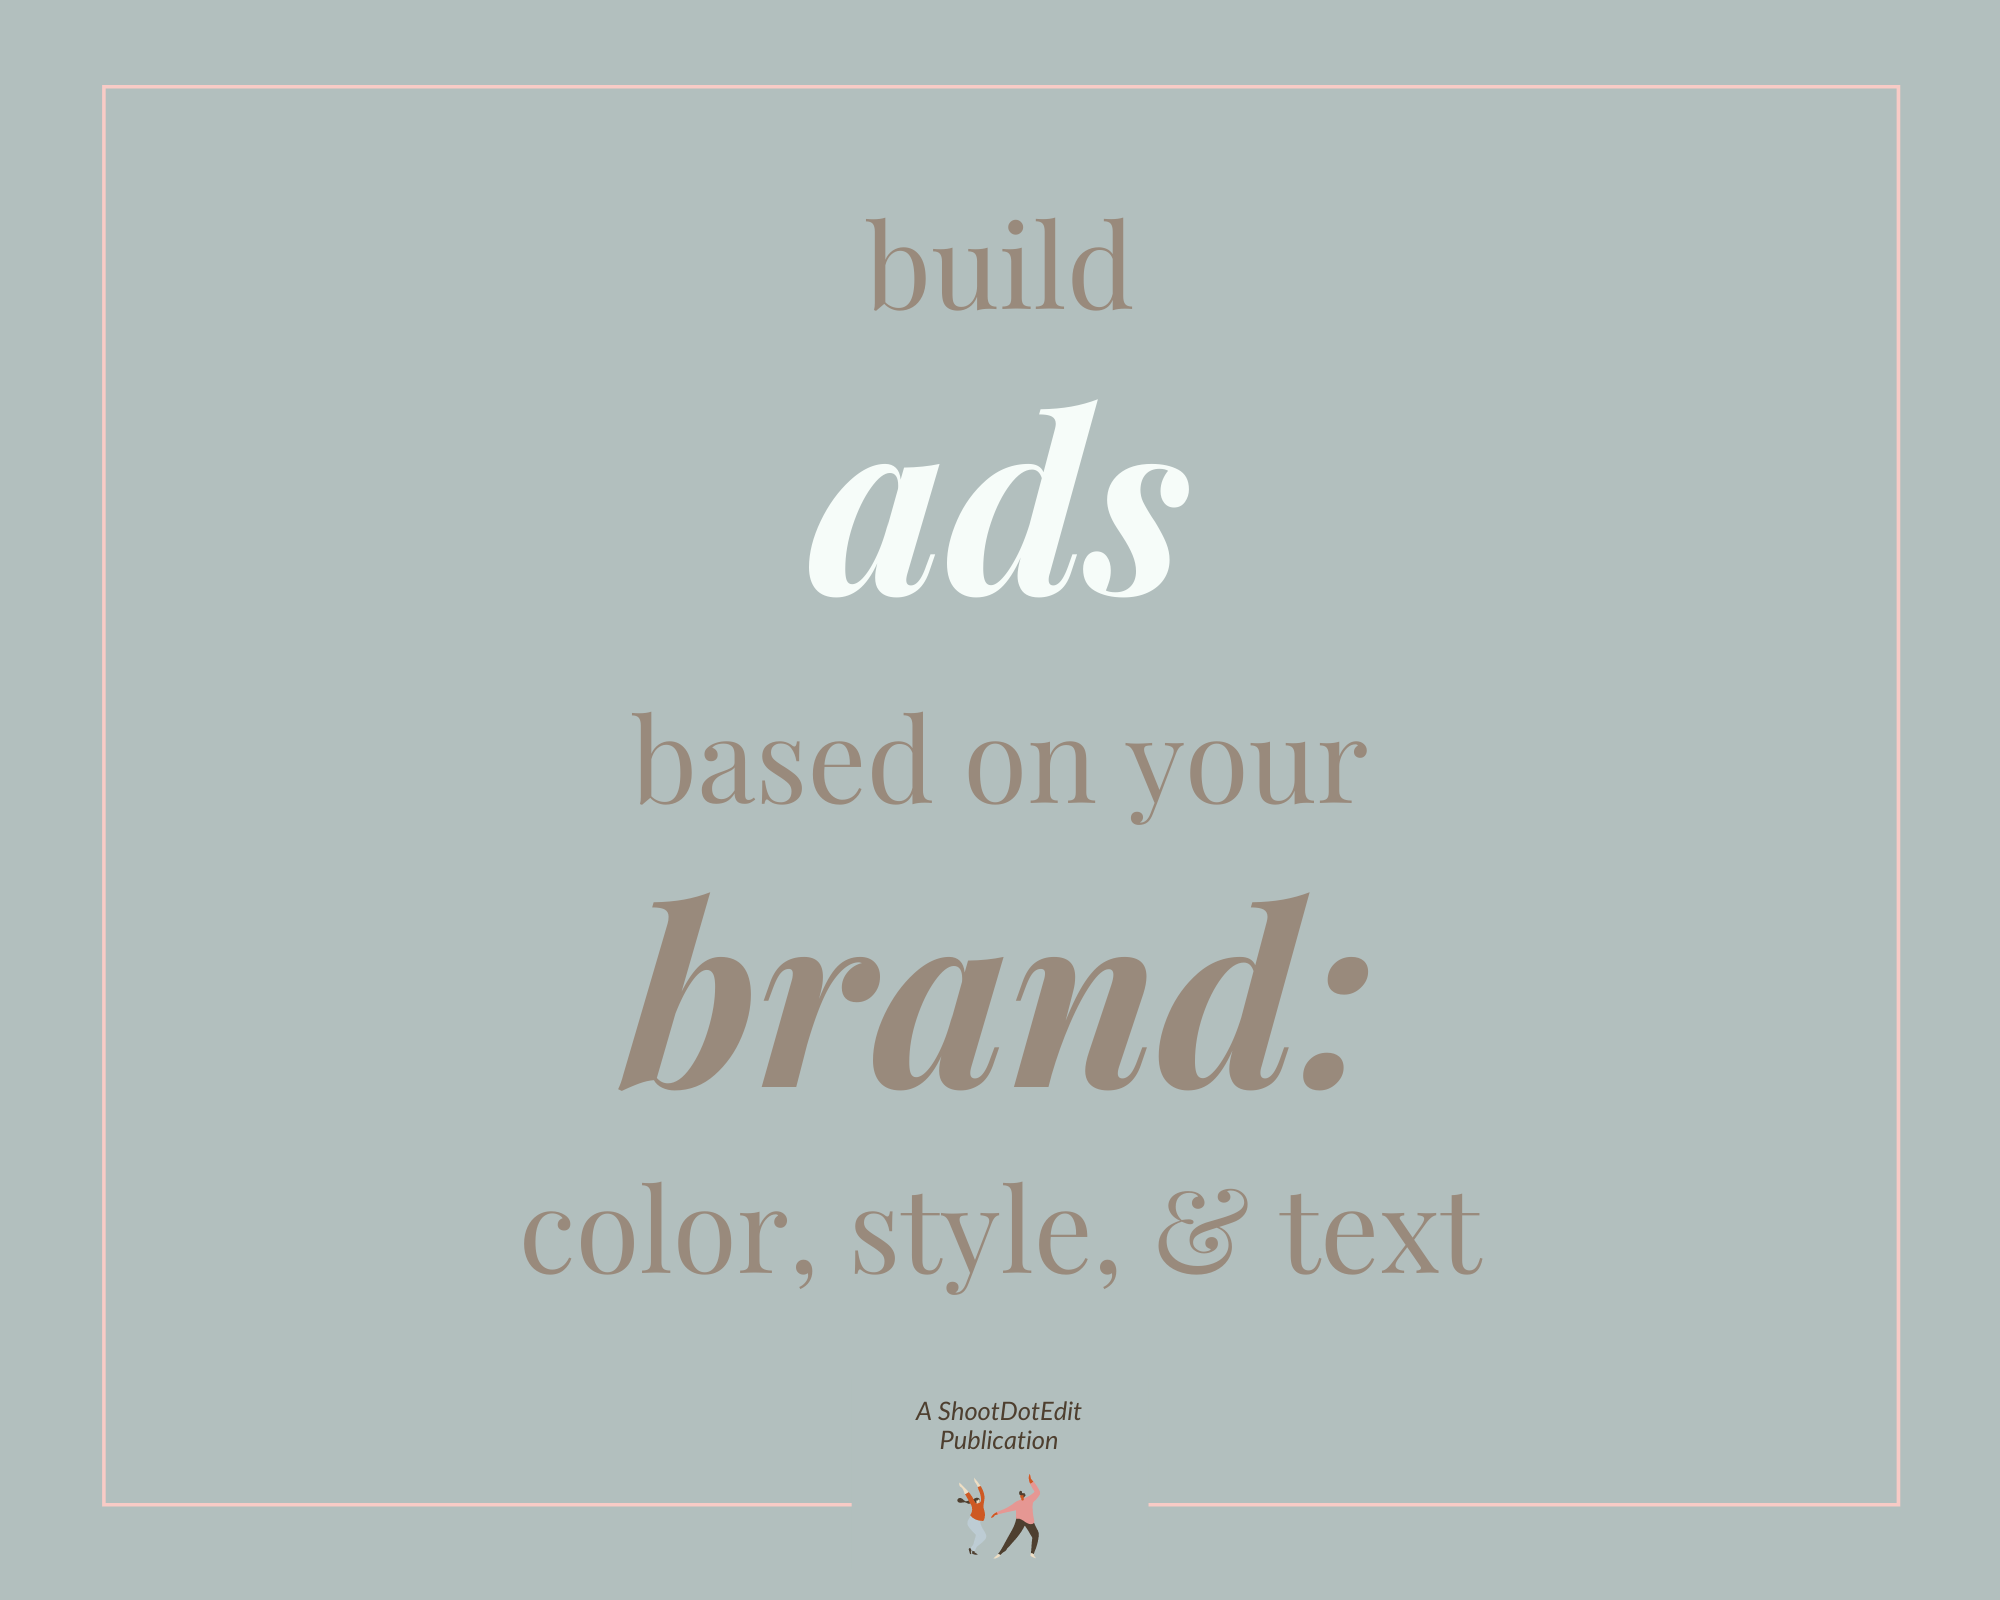 Infographic stating build ads based on your brand color, style and text